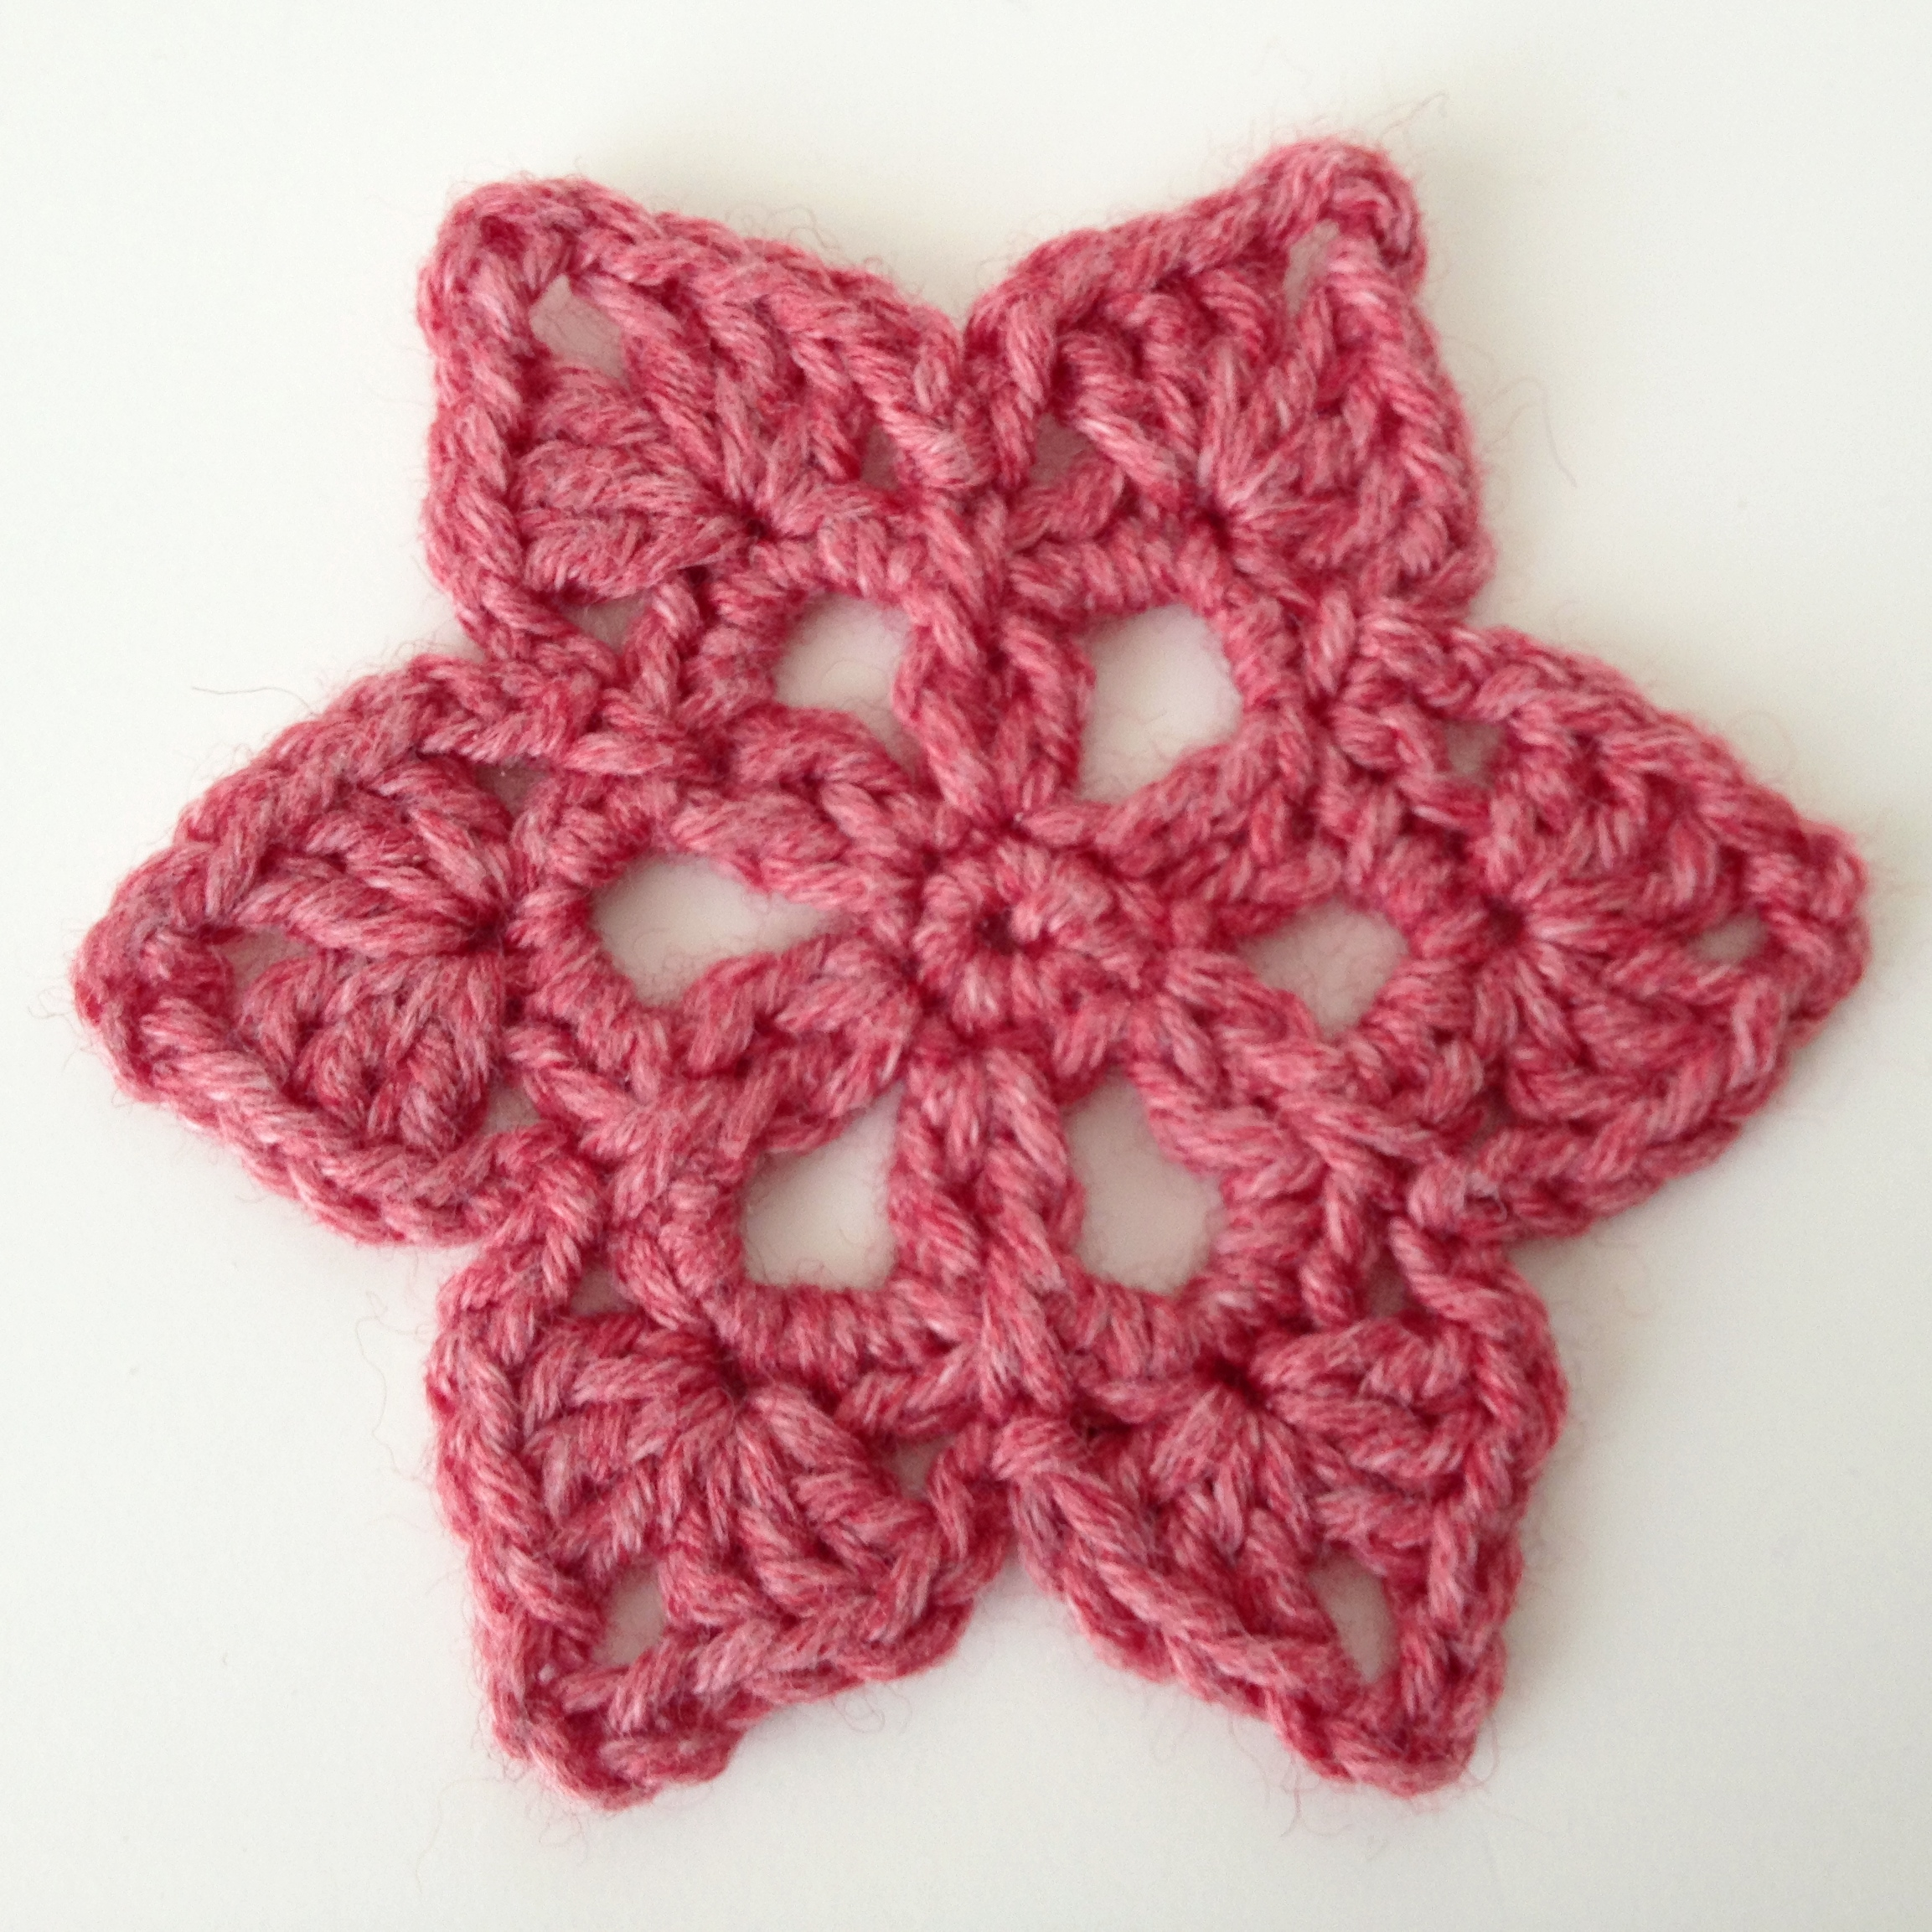 Crochet motif #36 from the book ?Beyond the square Crochet motifs?